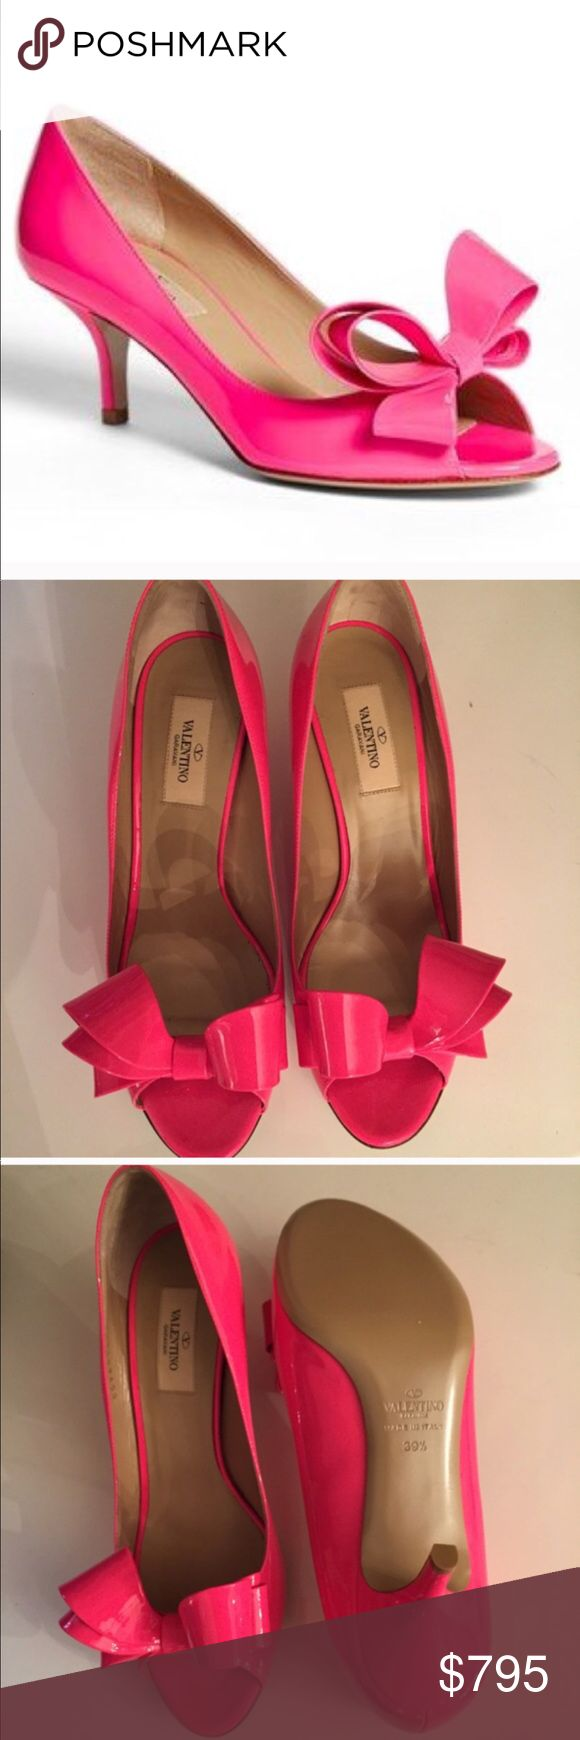 Valentino Bow Pump Brand new in box. My favorite shoes! 🎀They have been sitting a box for over a year now. Beautiful bright pink. Purchased from Nordstrom's for full price Valentino Shoes Heels